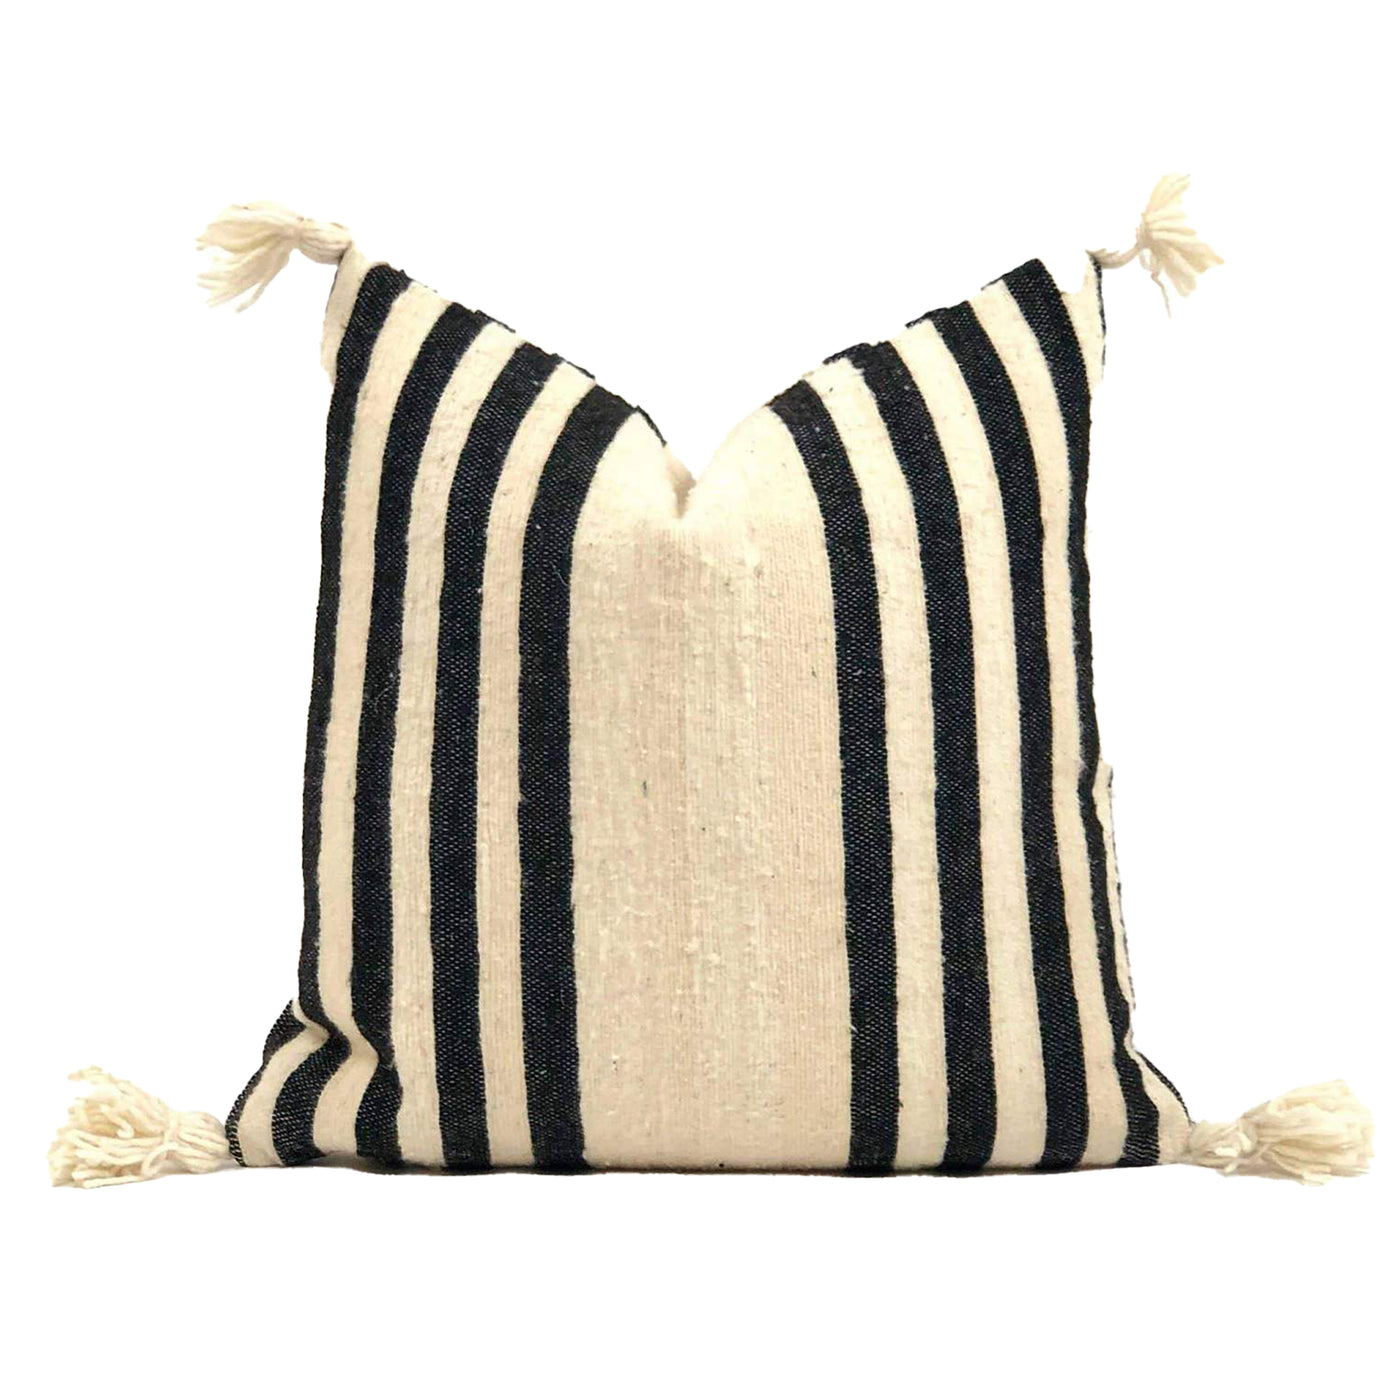 Moroccan Wool Throw Pillow - Brug